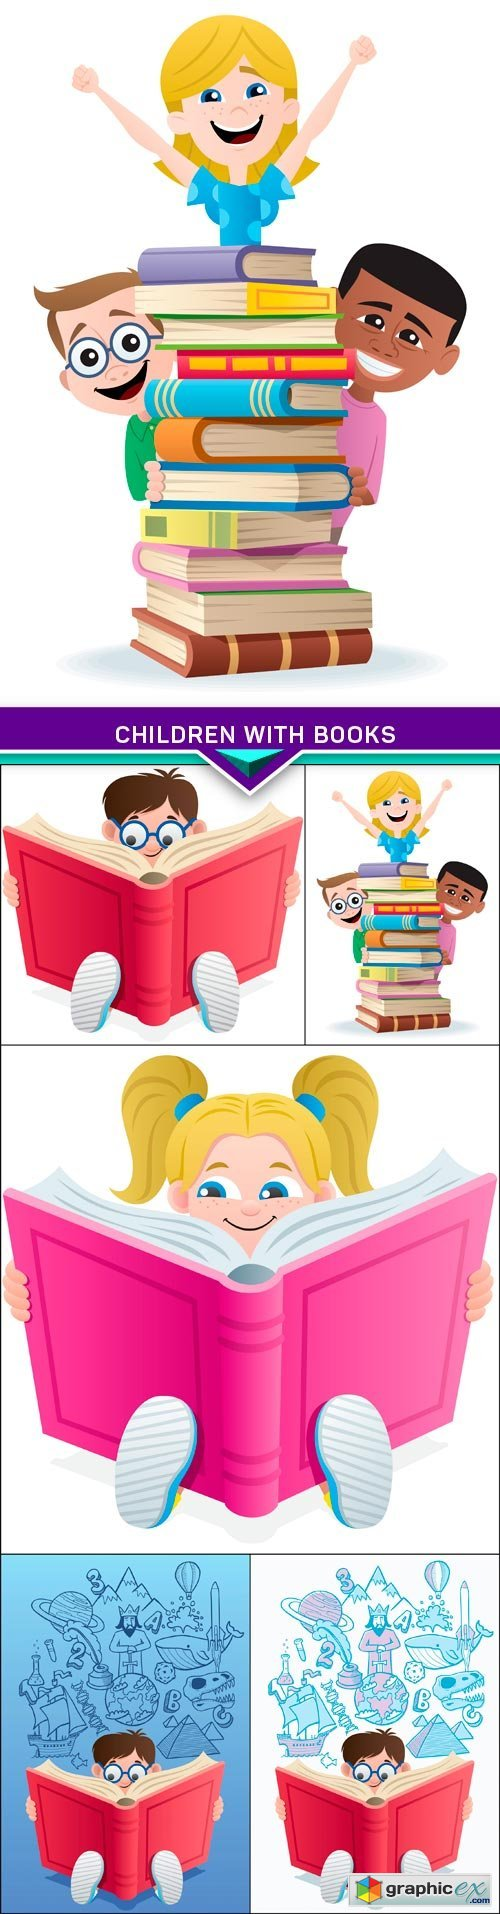 Children with books 5X EPS